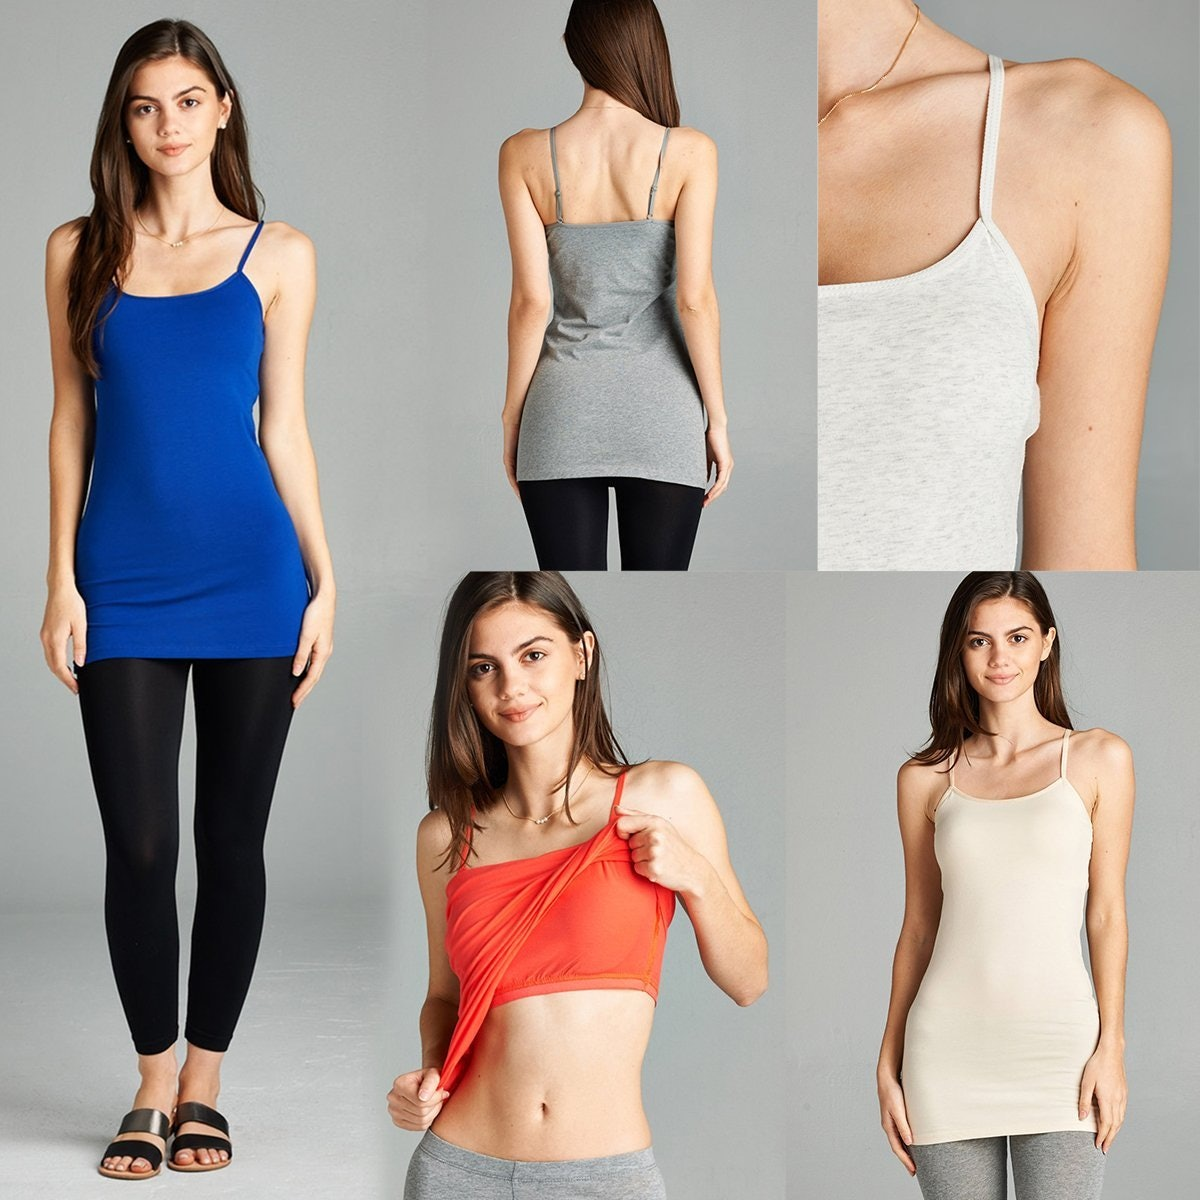 ef1c293ac The 7 Best Camisoles With Built-In Bras